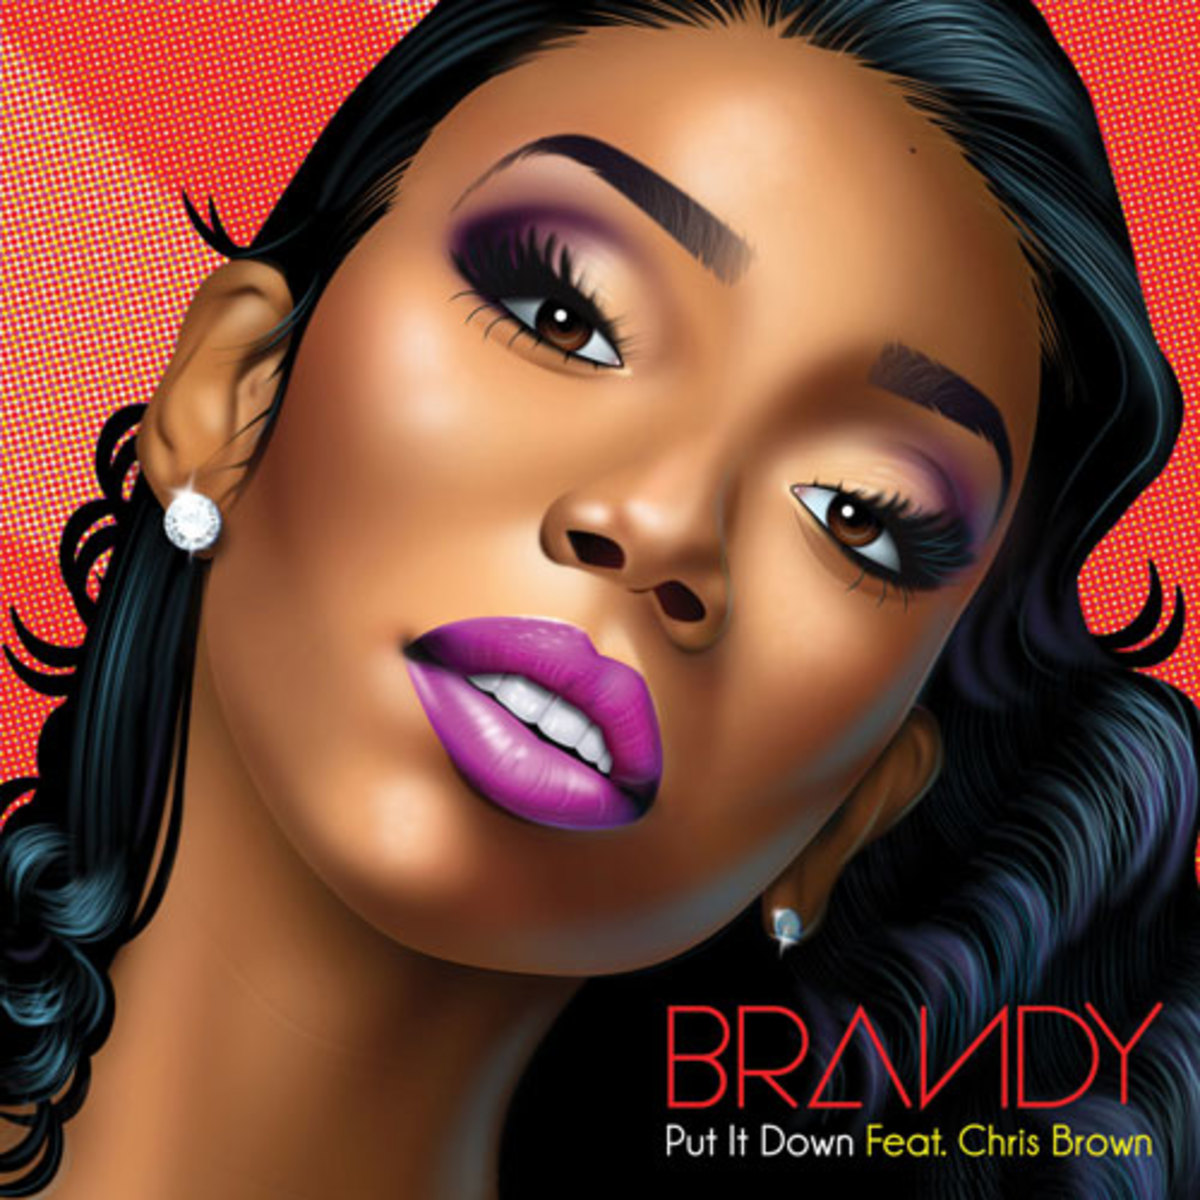 Brandy Put It Down ft. Chris Brown